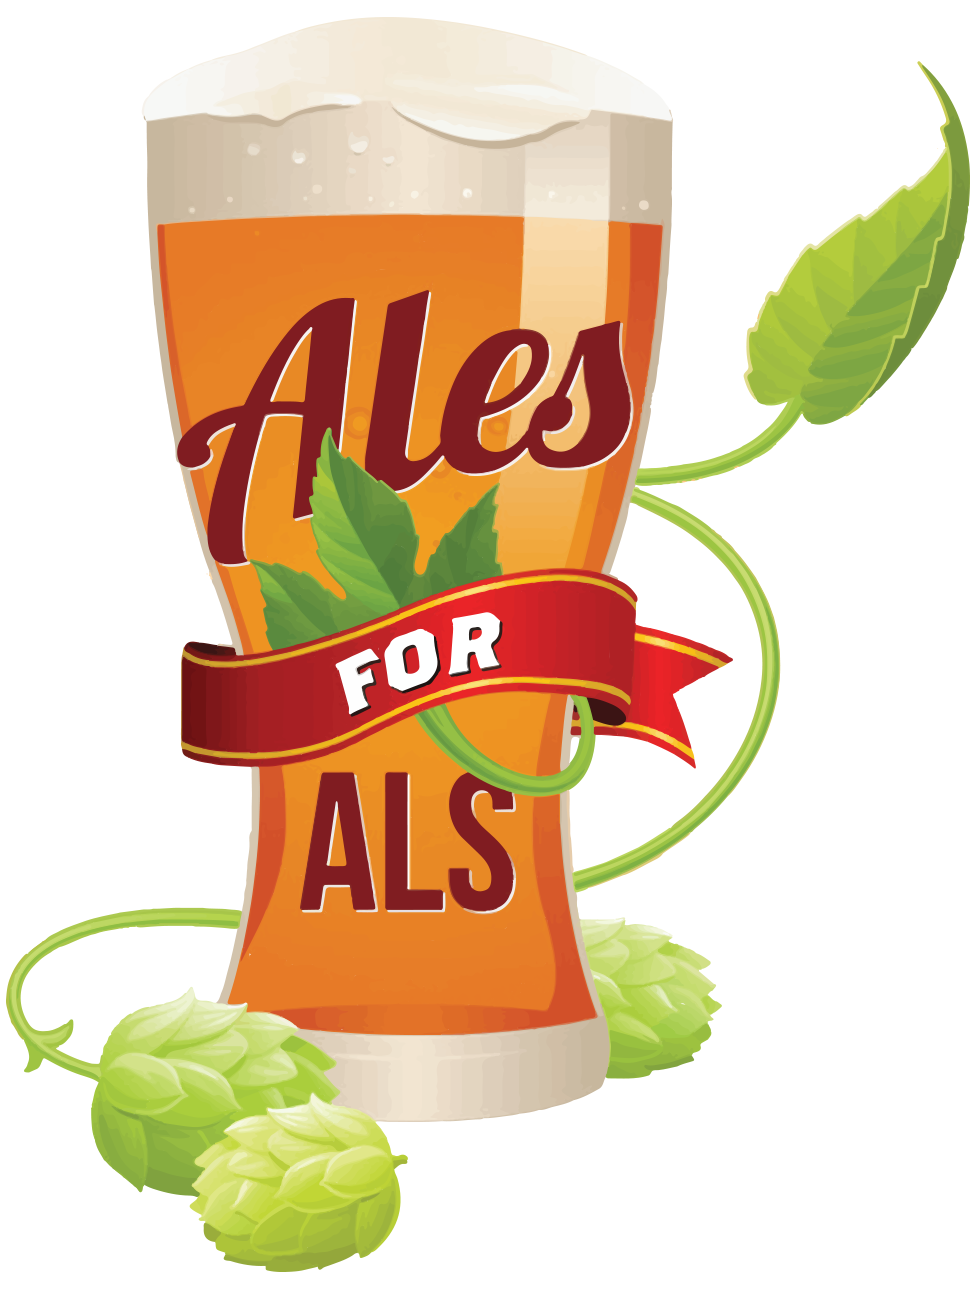 Ales-for-ALS-logo